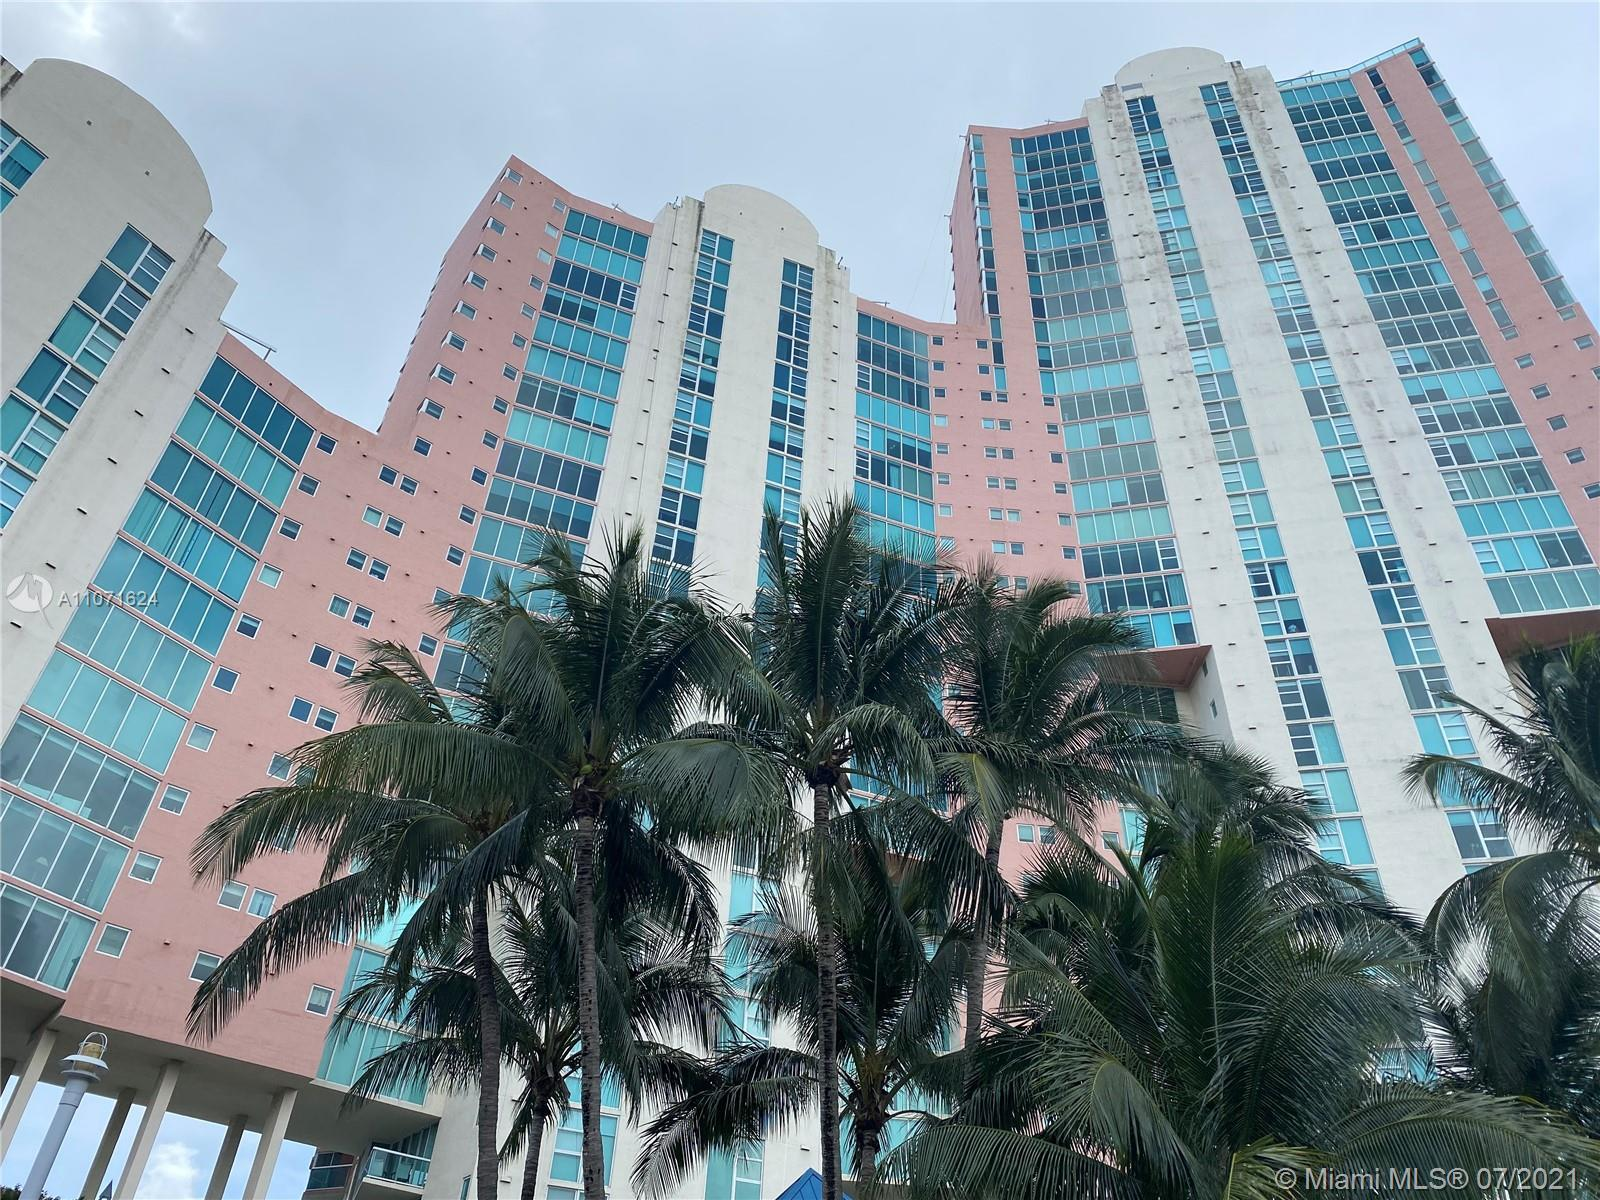 Hidden Bay Condominium is located in the north of Miami-DADE County, in the heart of the city of Ave